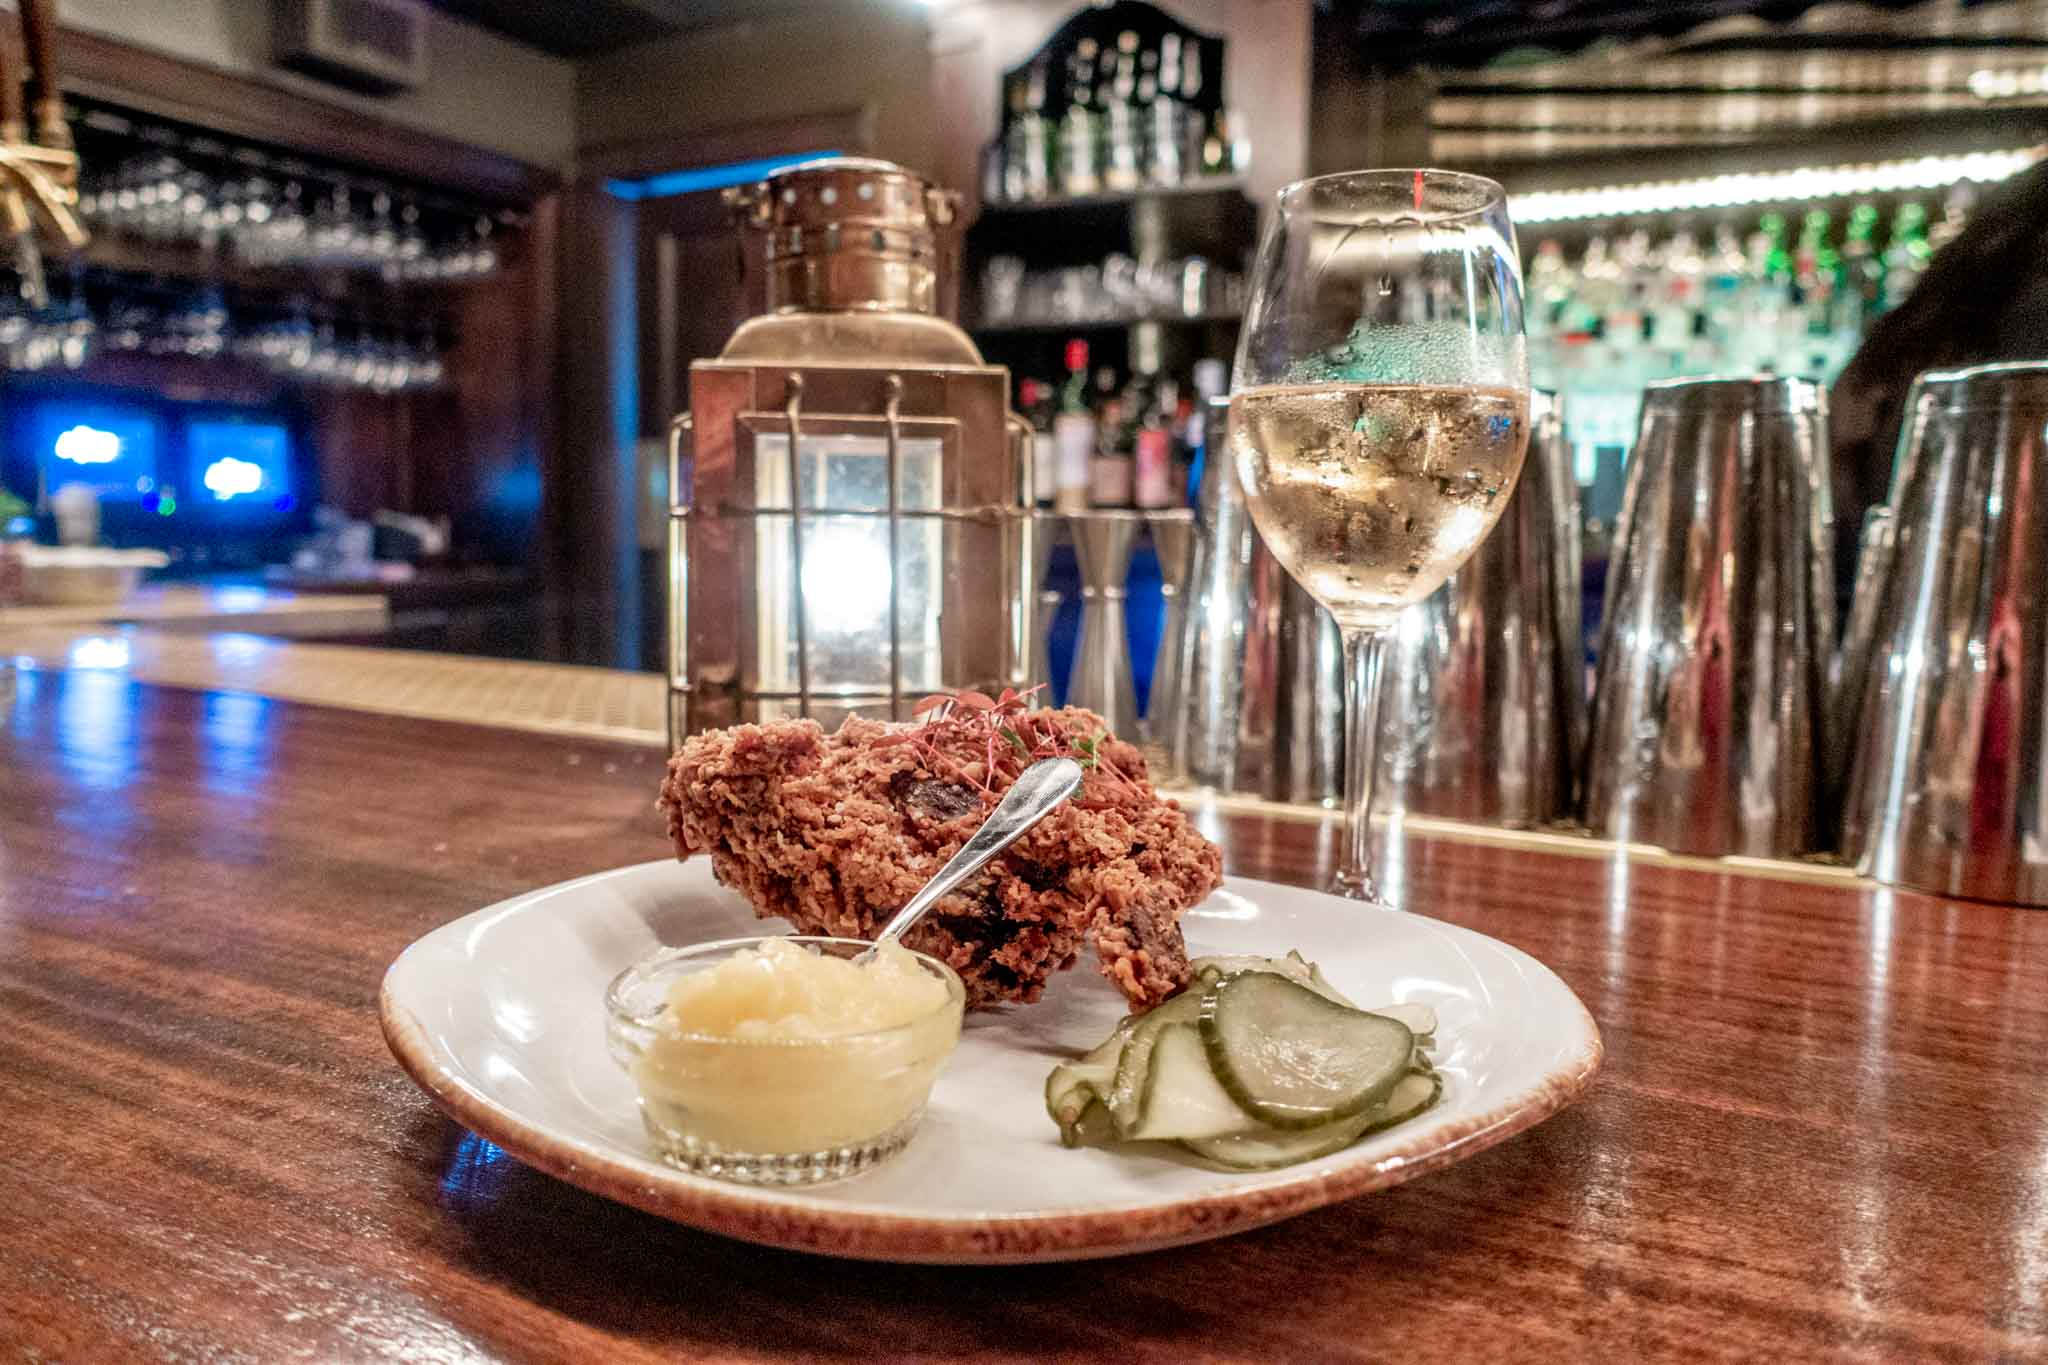 Fried chicken and pickles on a plate with a glass of champagne